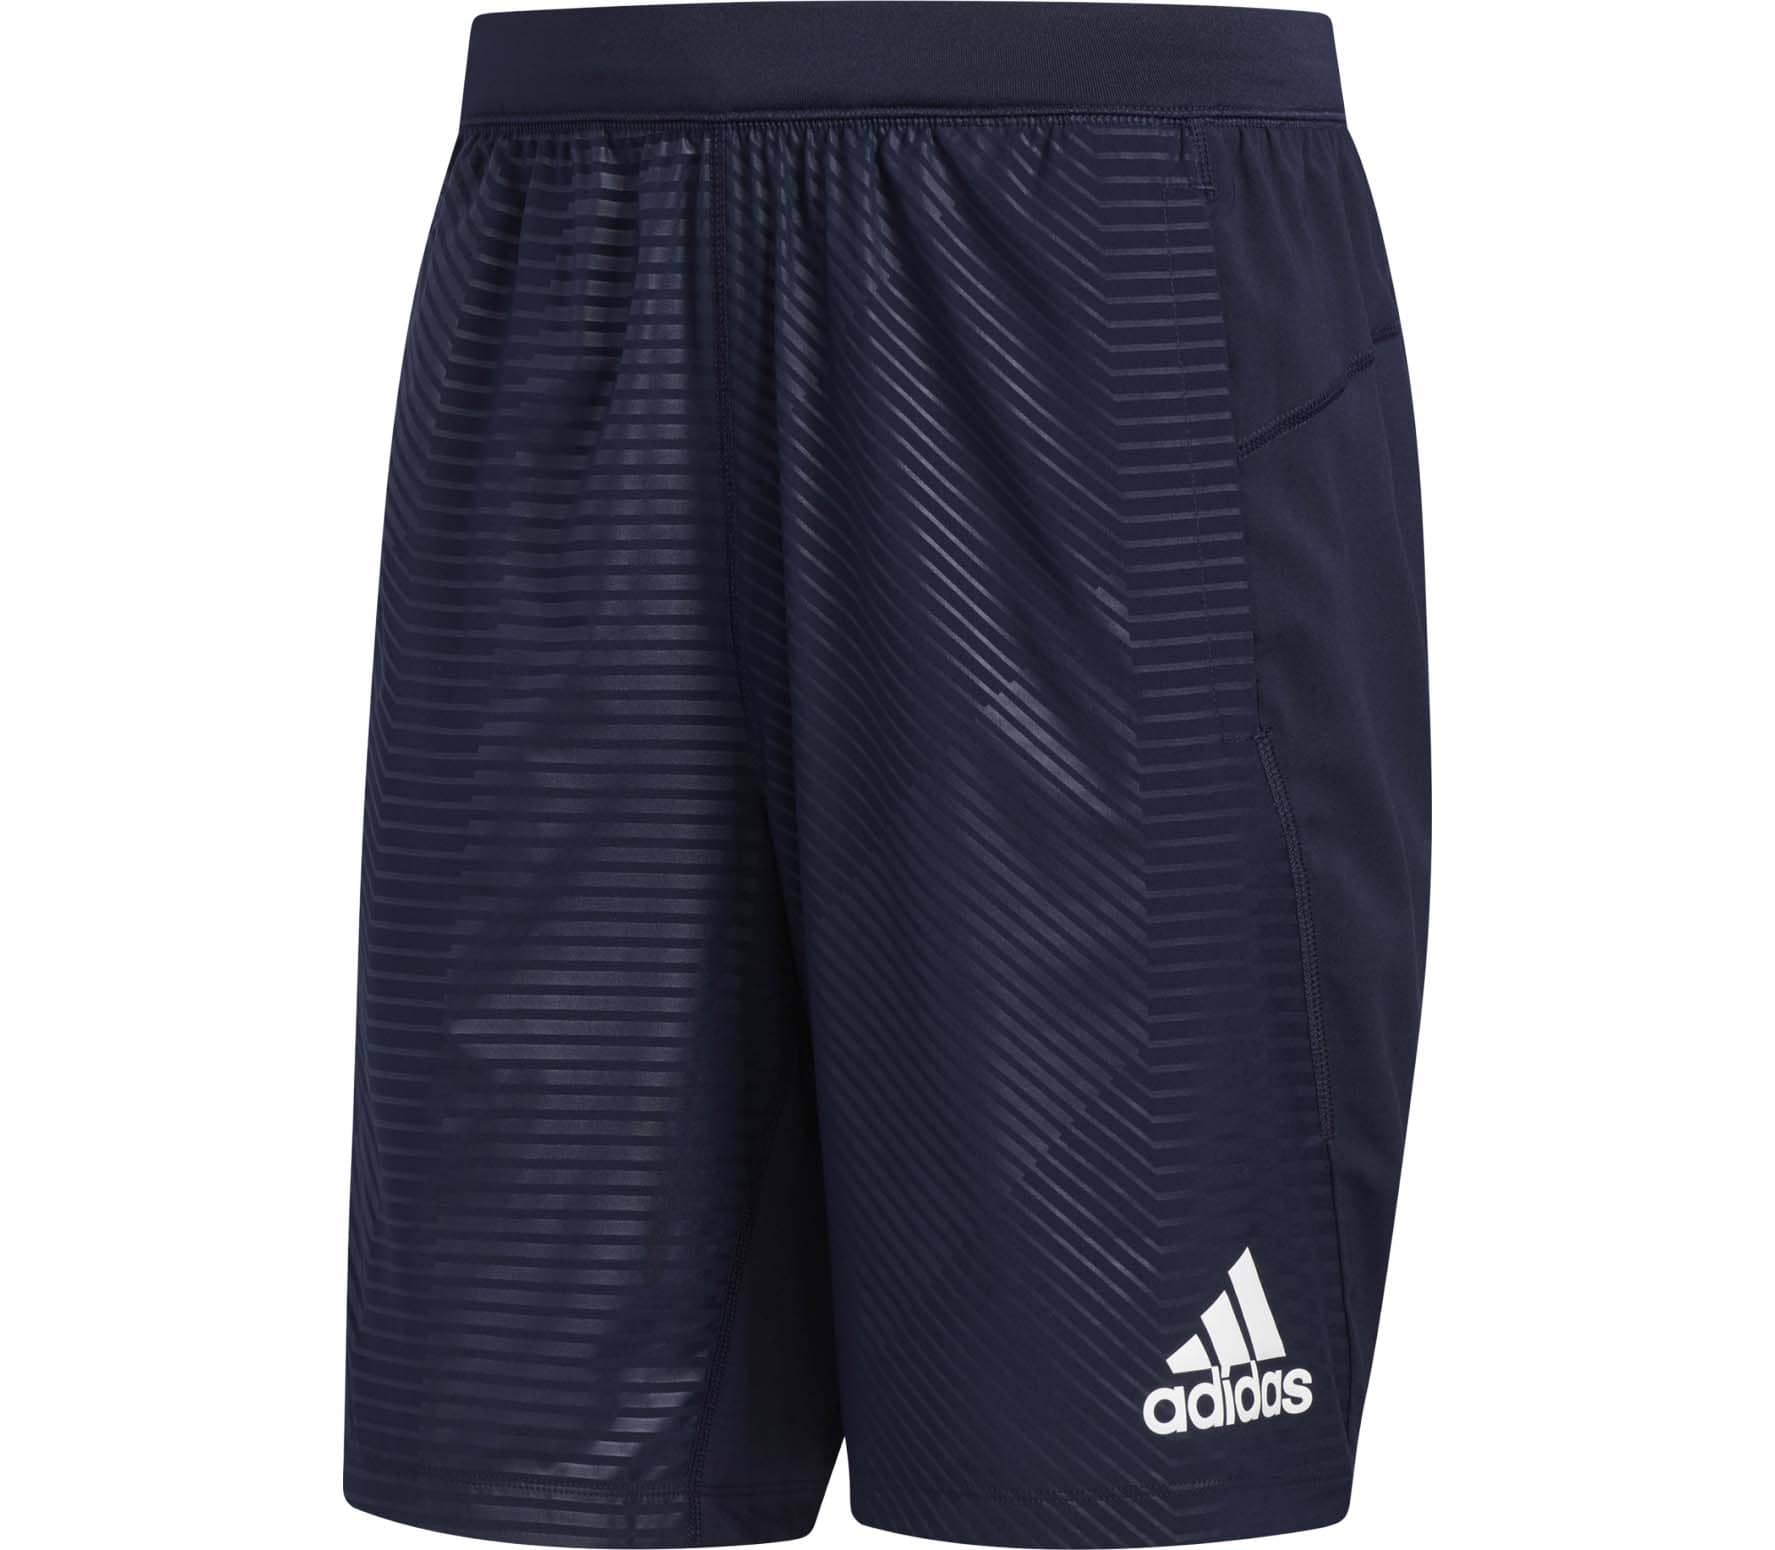 adidas 4KRFT Graphic Woven 10 inch Men